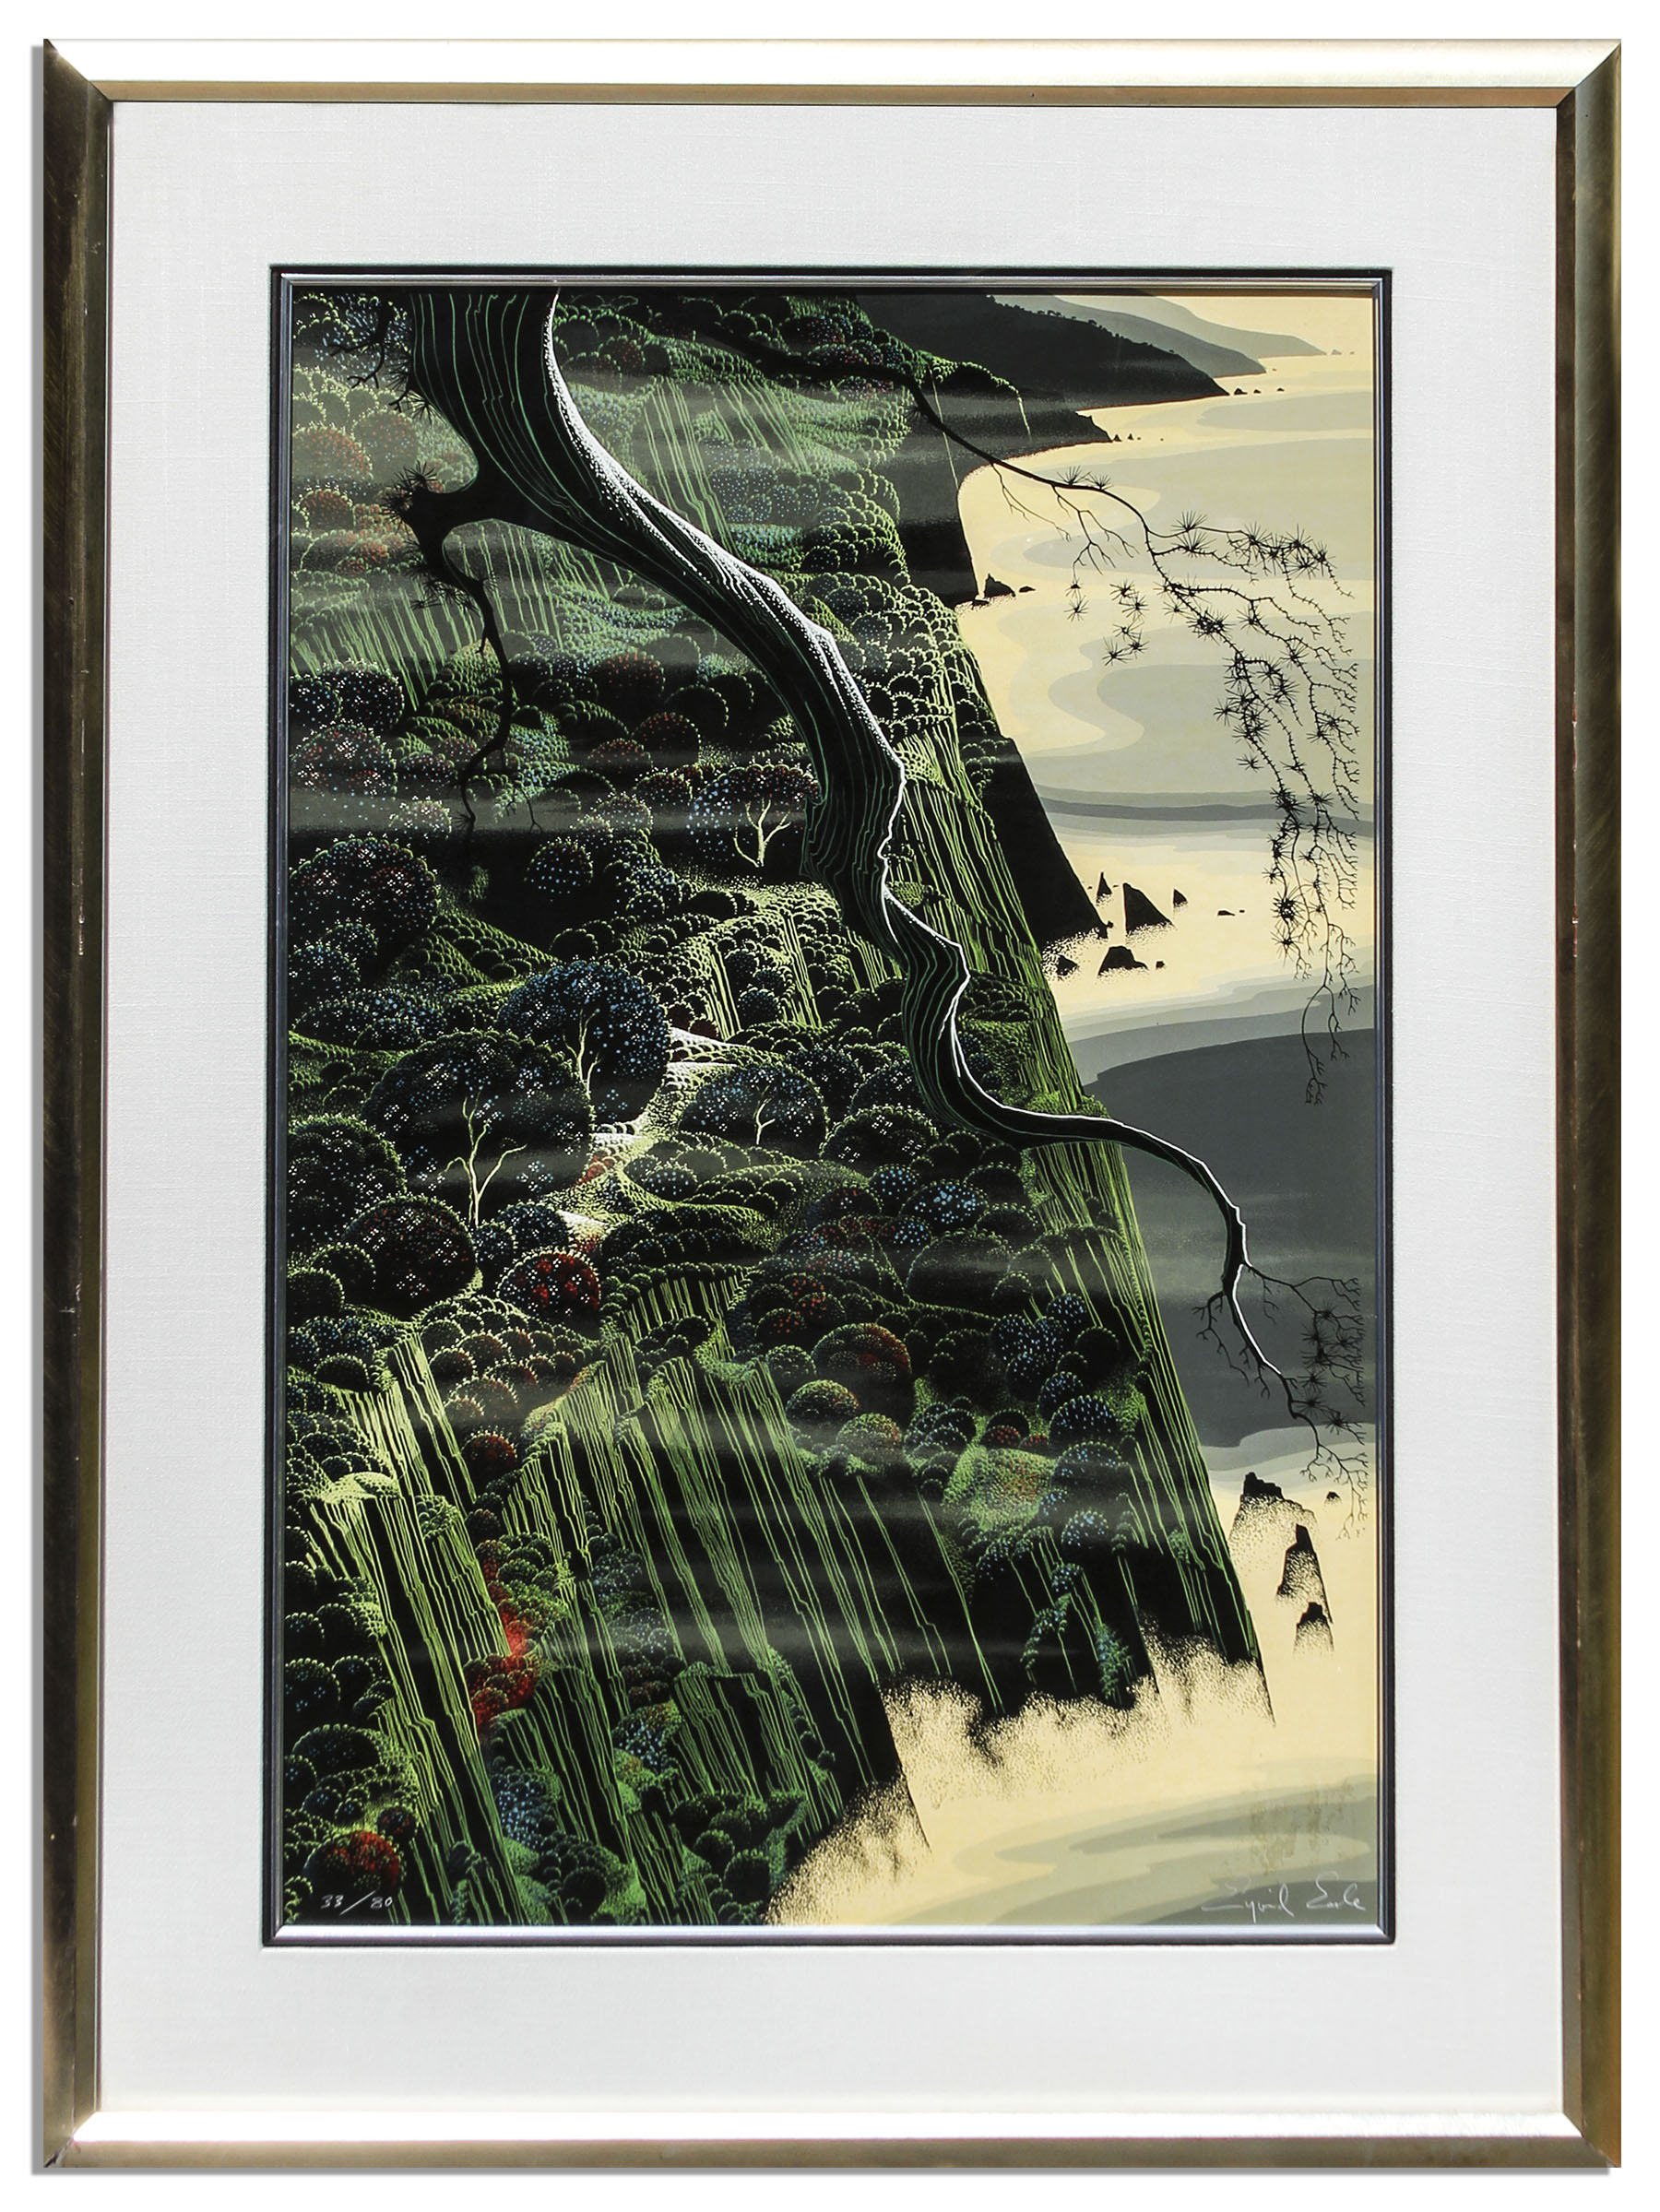 Eyvind Earle Art Ray Bradbury Personally Owned Art -- Limited Edition California Coastal Landscape Silkscreen by Eyvind Earle Titled ''From Out of The Sea''